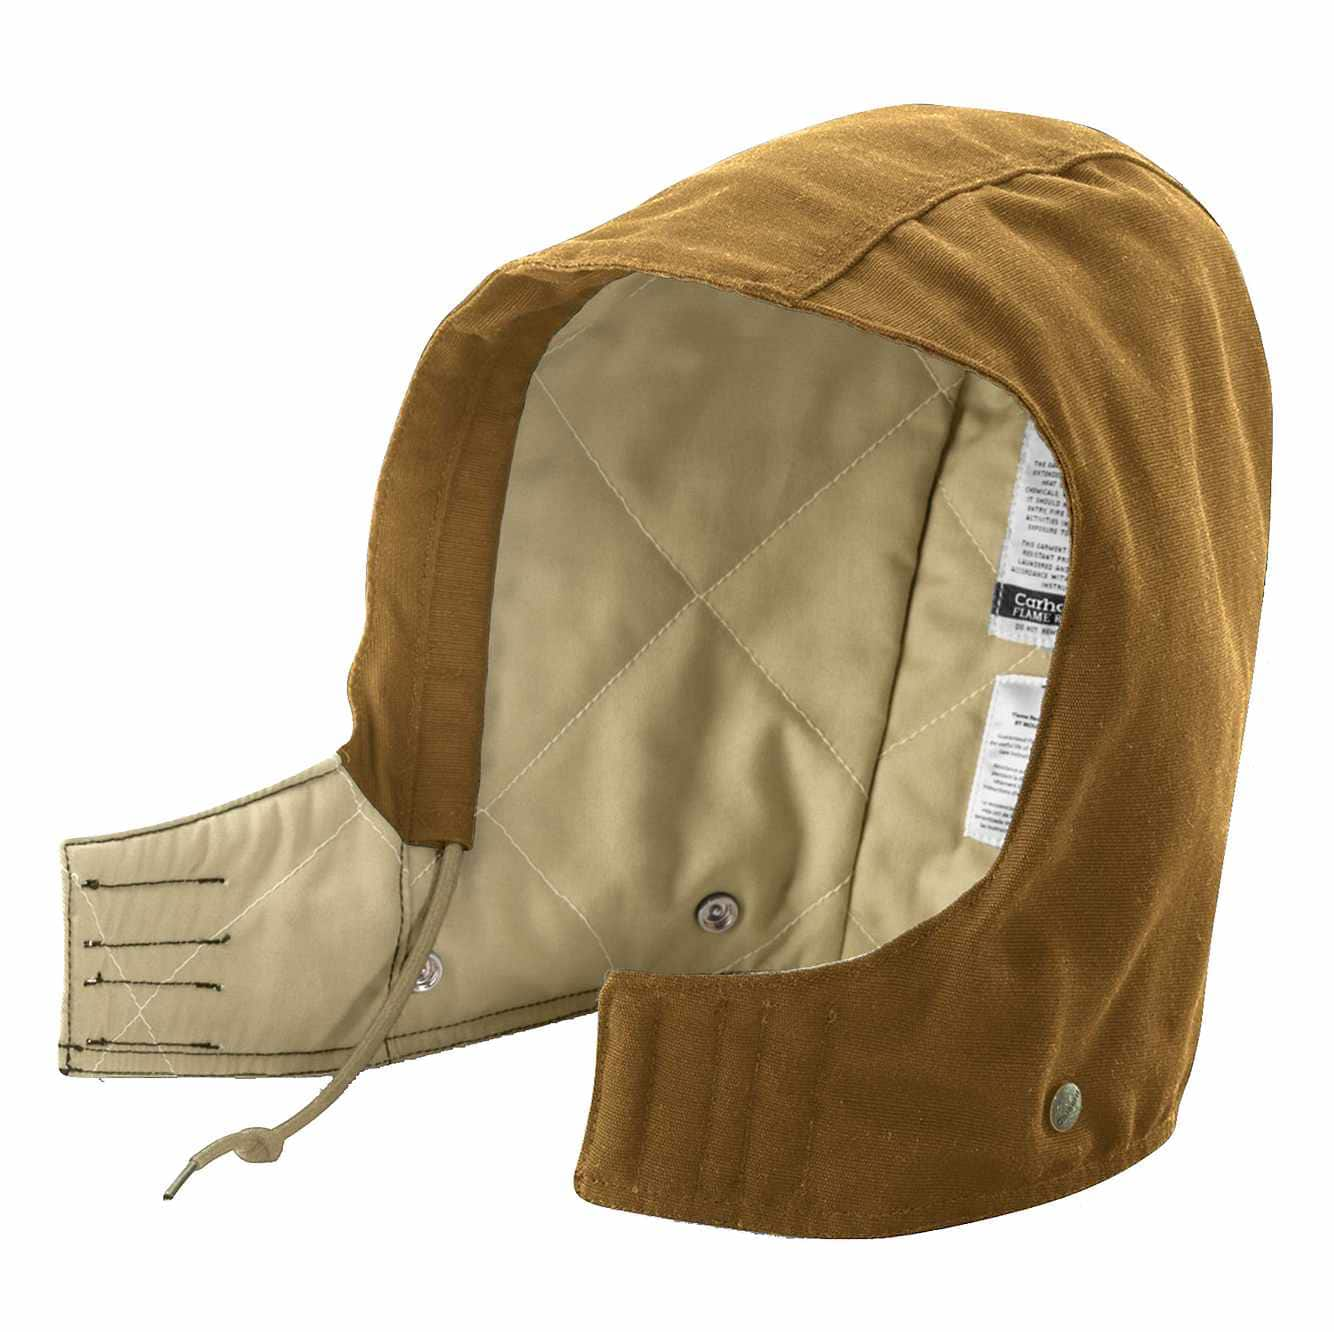 Picture of Flame-Resistant Midweight Canvas Hood in Carhartt Brown